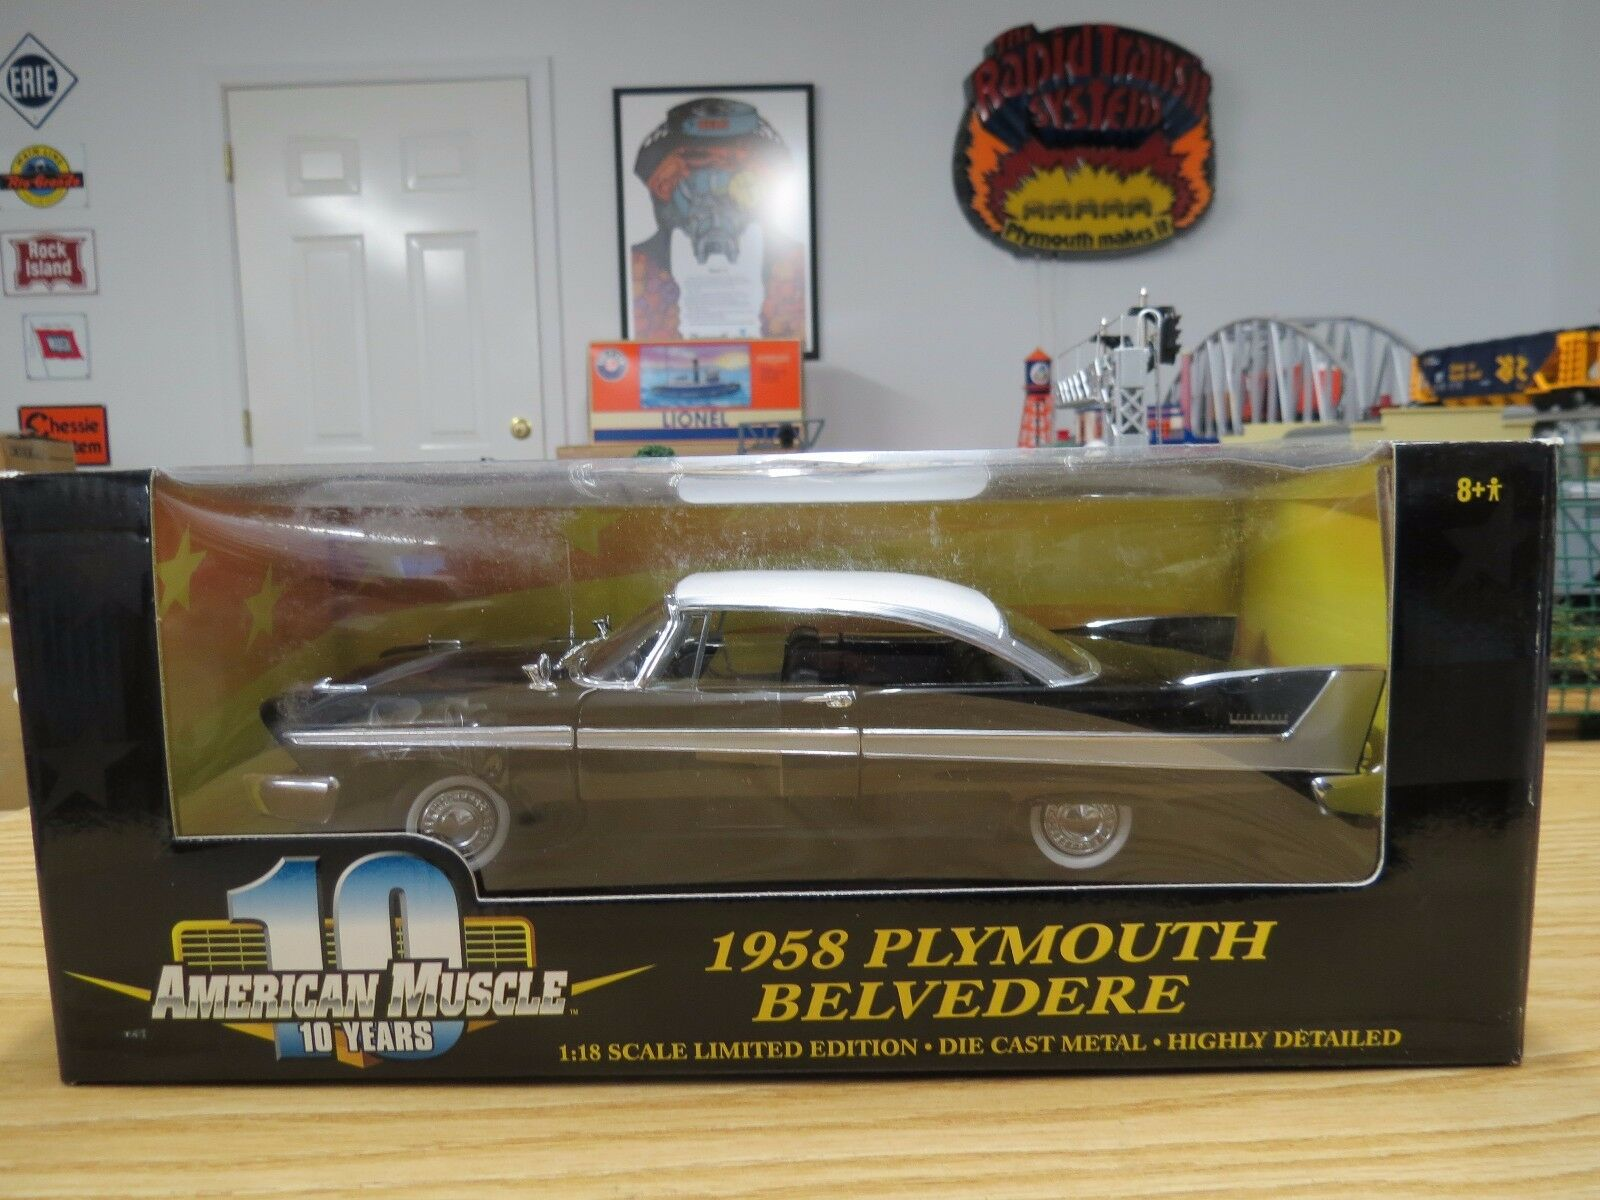 Ertl American Muscle 1958 Plymouth Belvedere Coupe Negro blancoo,   36428, Nueva